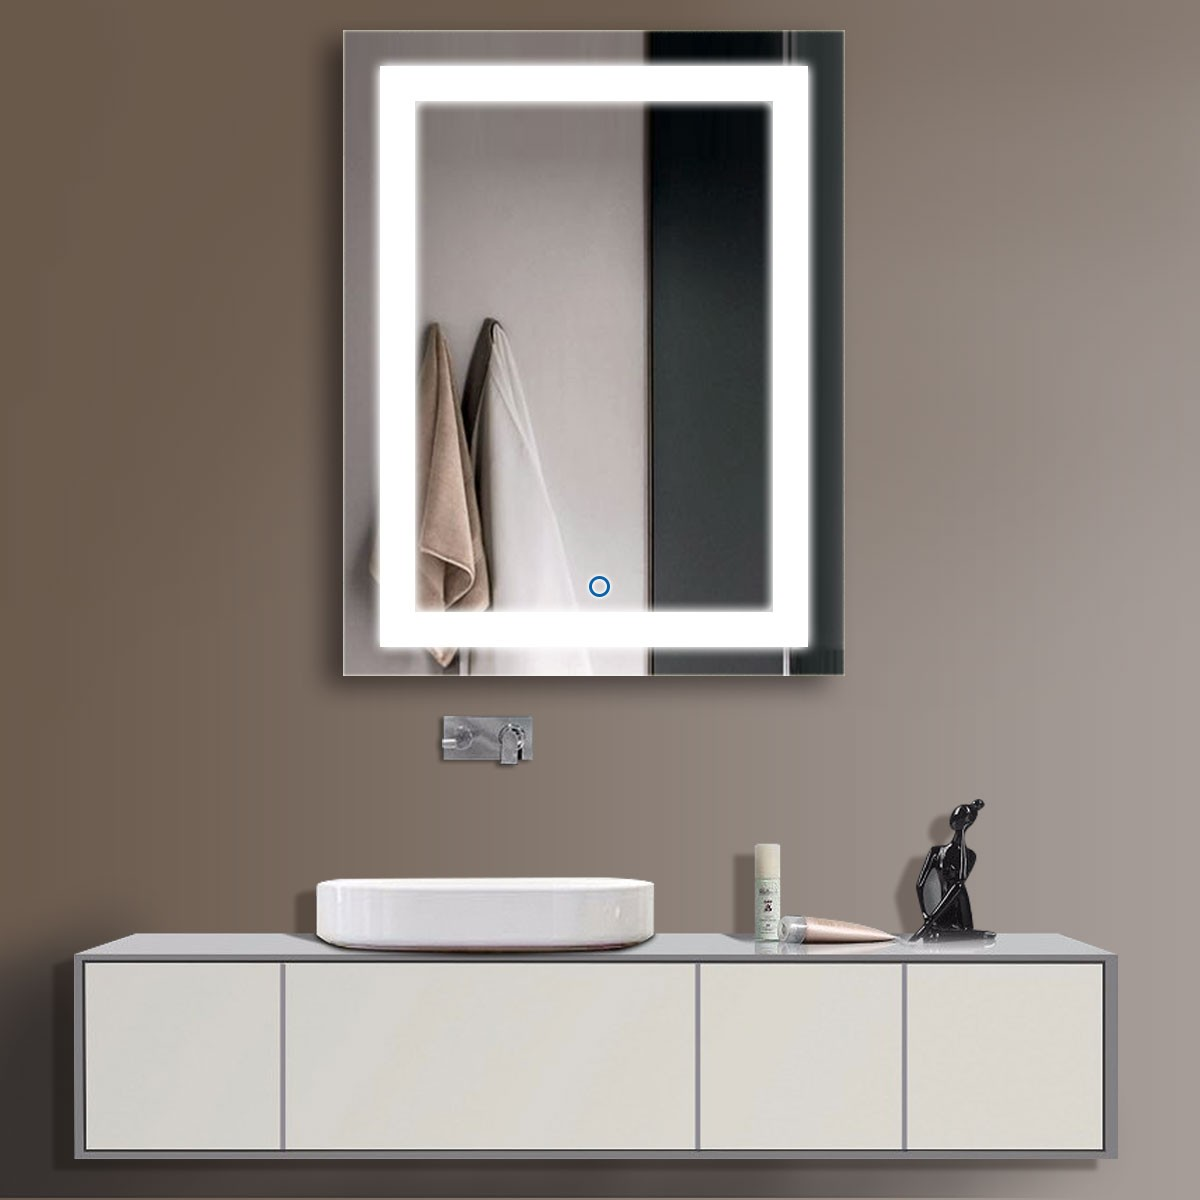 28 x 36 In Vertical LED Backlit Bathroom Mirror, Touch Button (DK-OD-CK168-I)